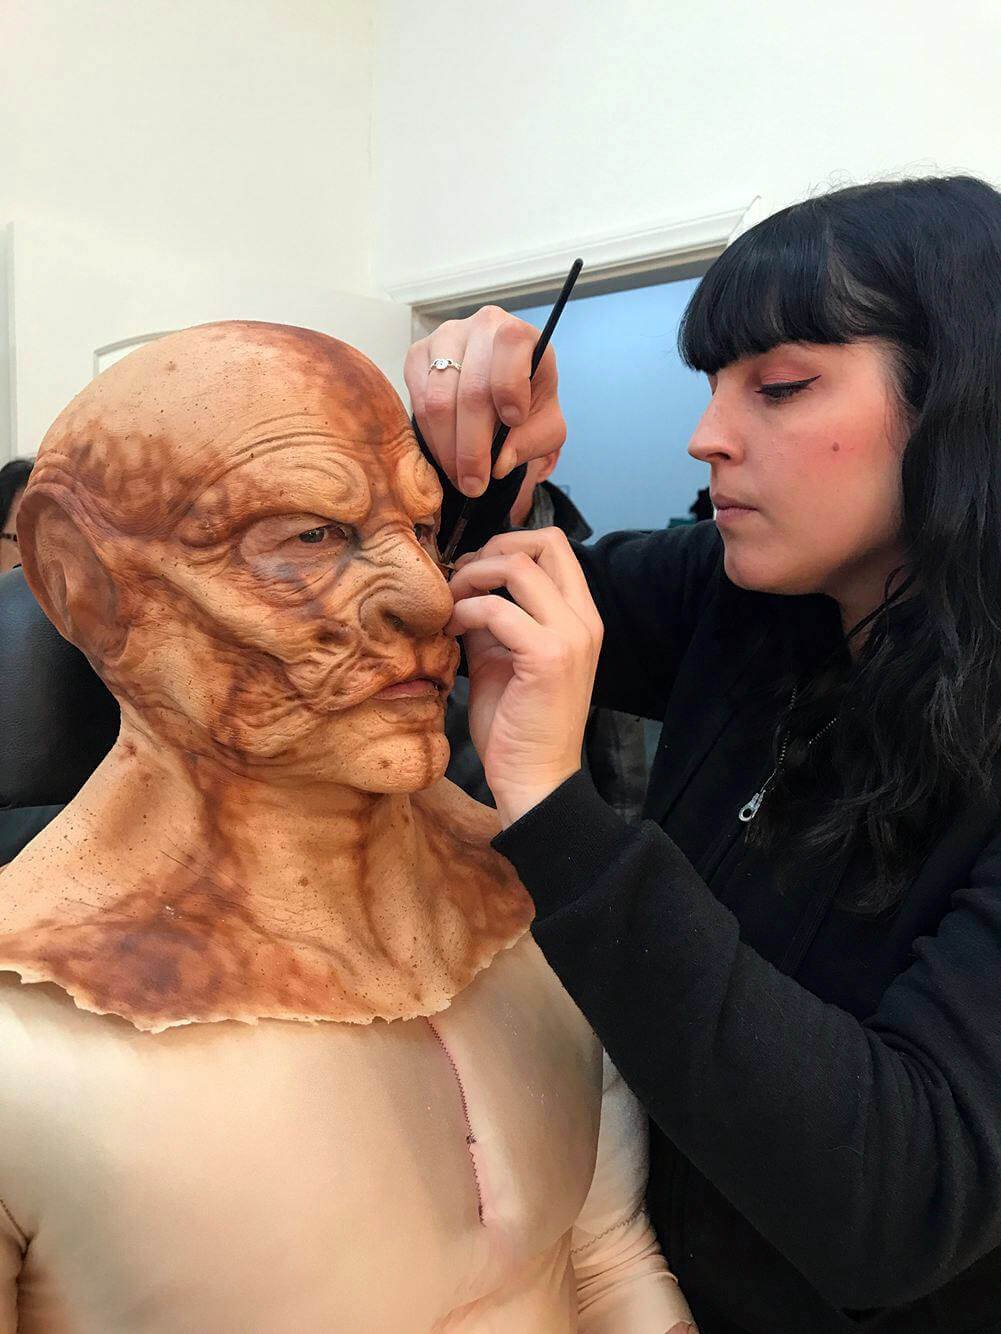 Rottentail Makeup 1 - First Images From Comic Adaptation Rottentail Show One Very Hungry Bunny